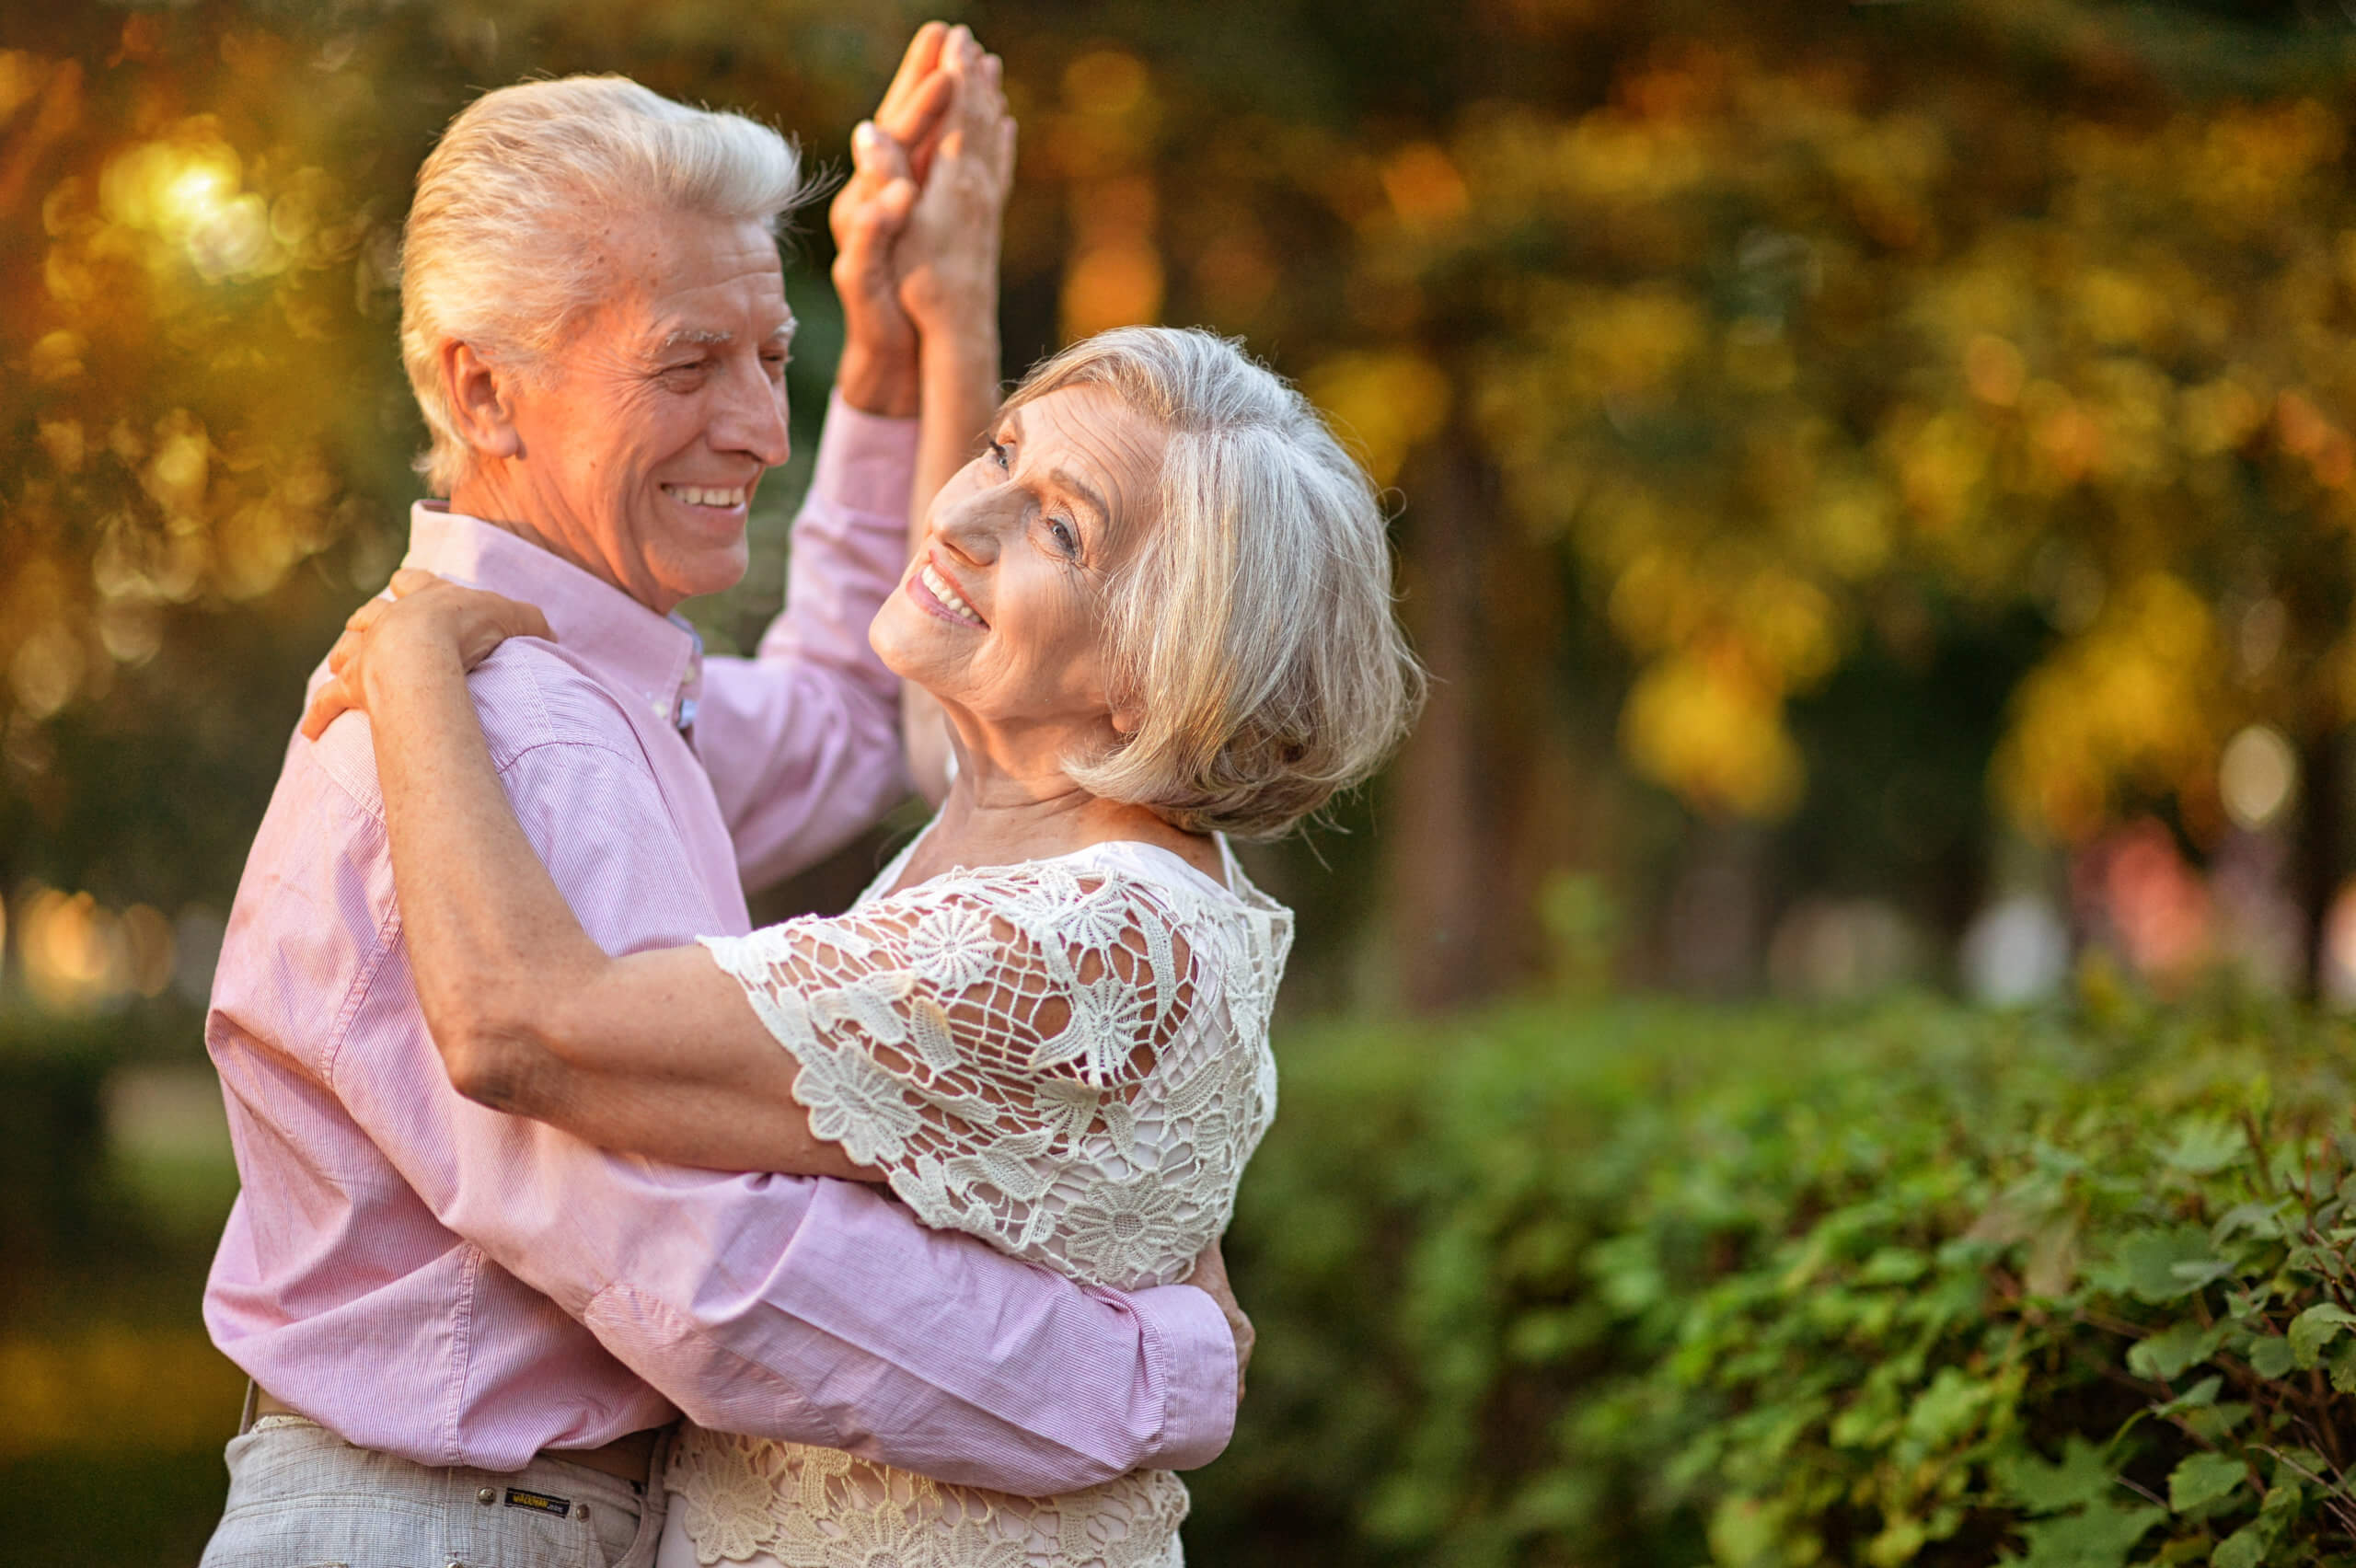 Romance does not die with age